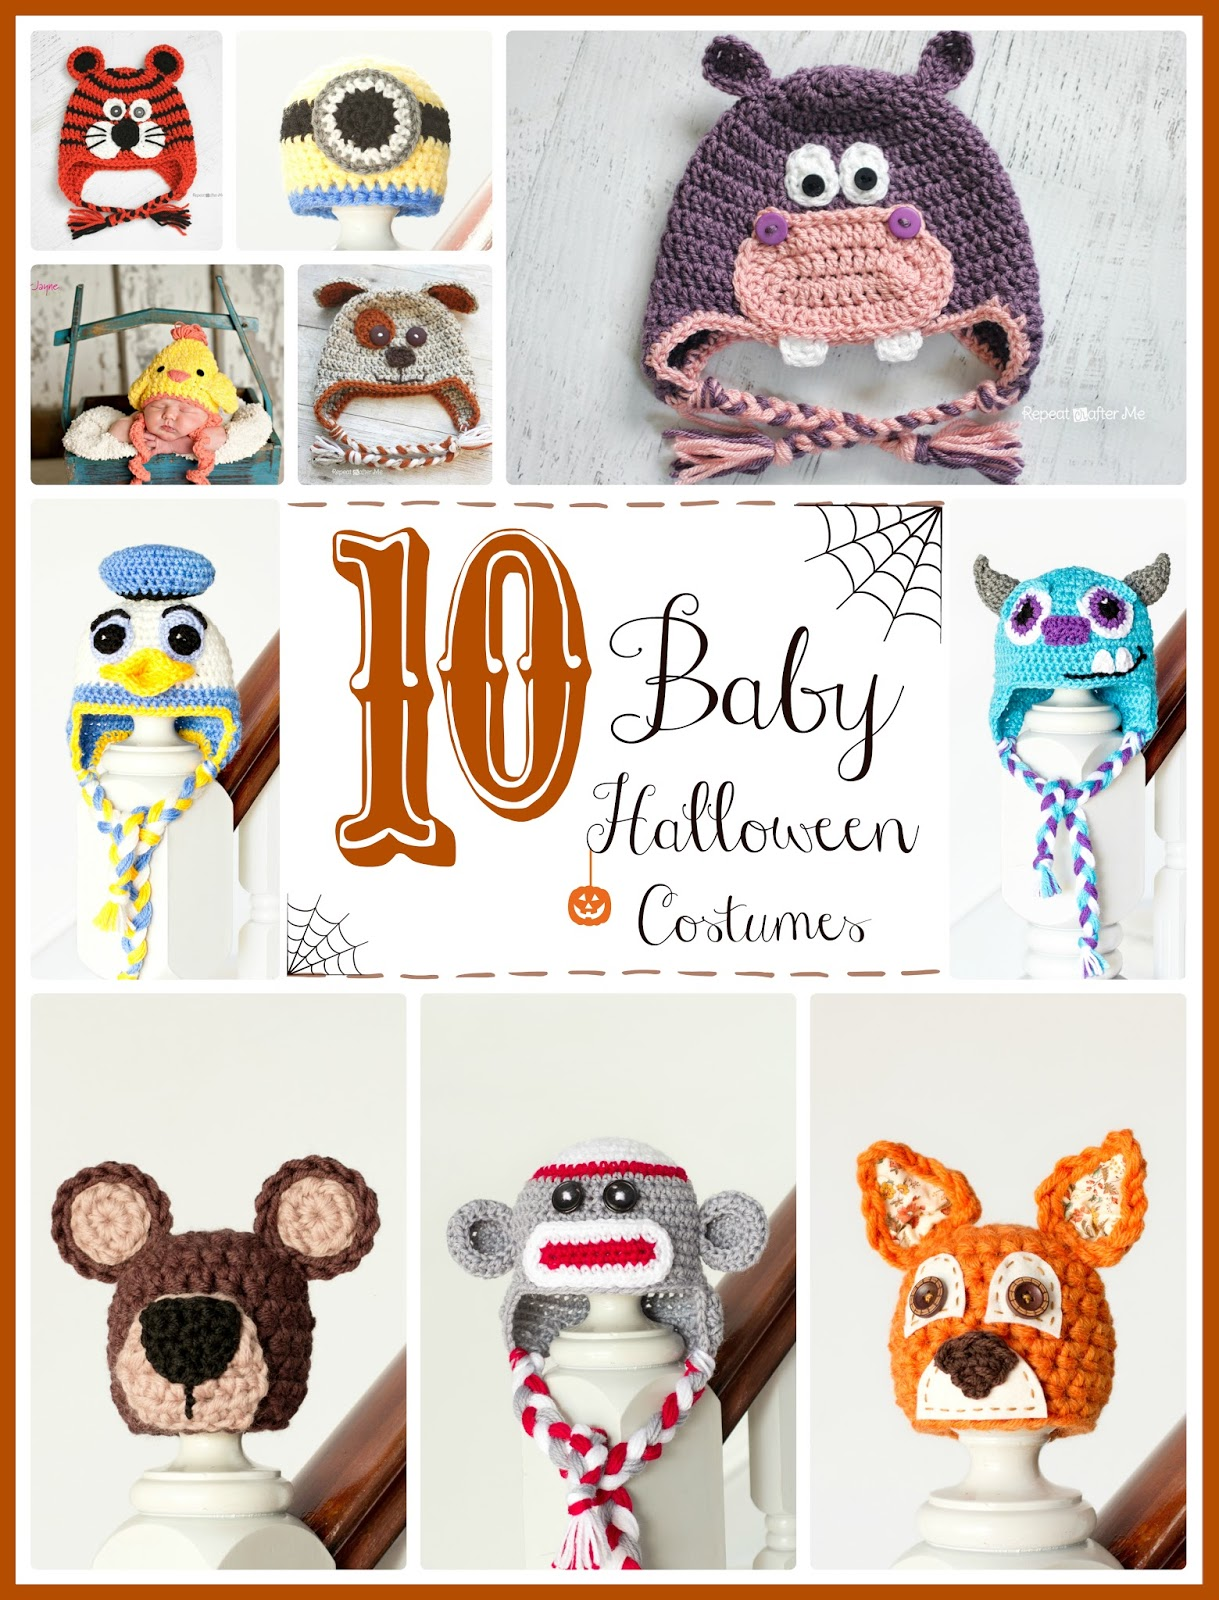 Free Crochet Patterns For Baby Halloween Costumes : Hopeful Honey Craft, Crochet, Create: 10 Free Halloween ...